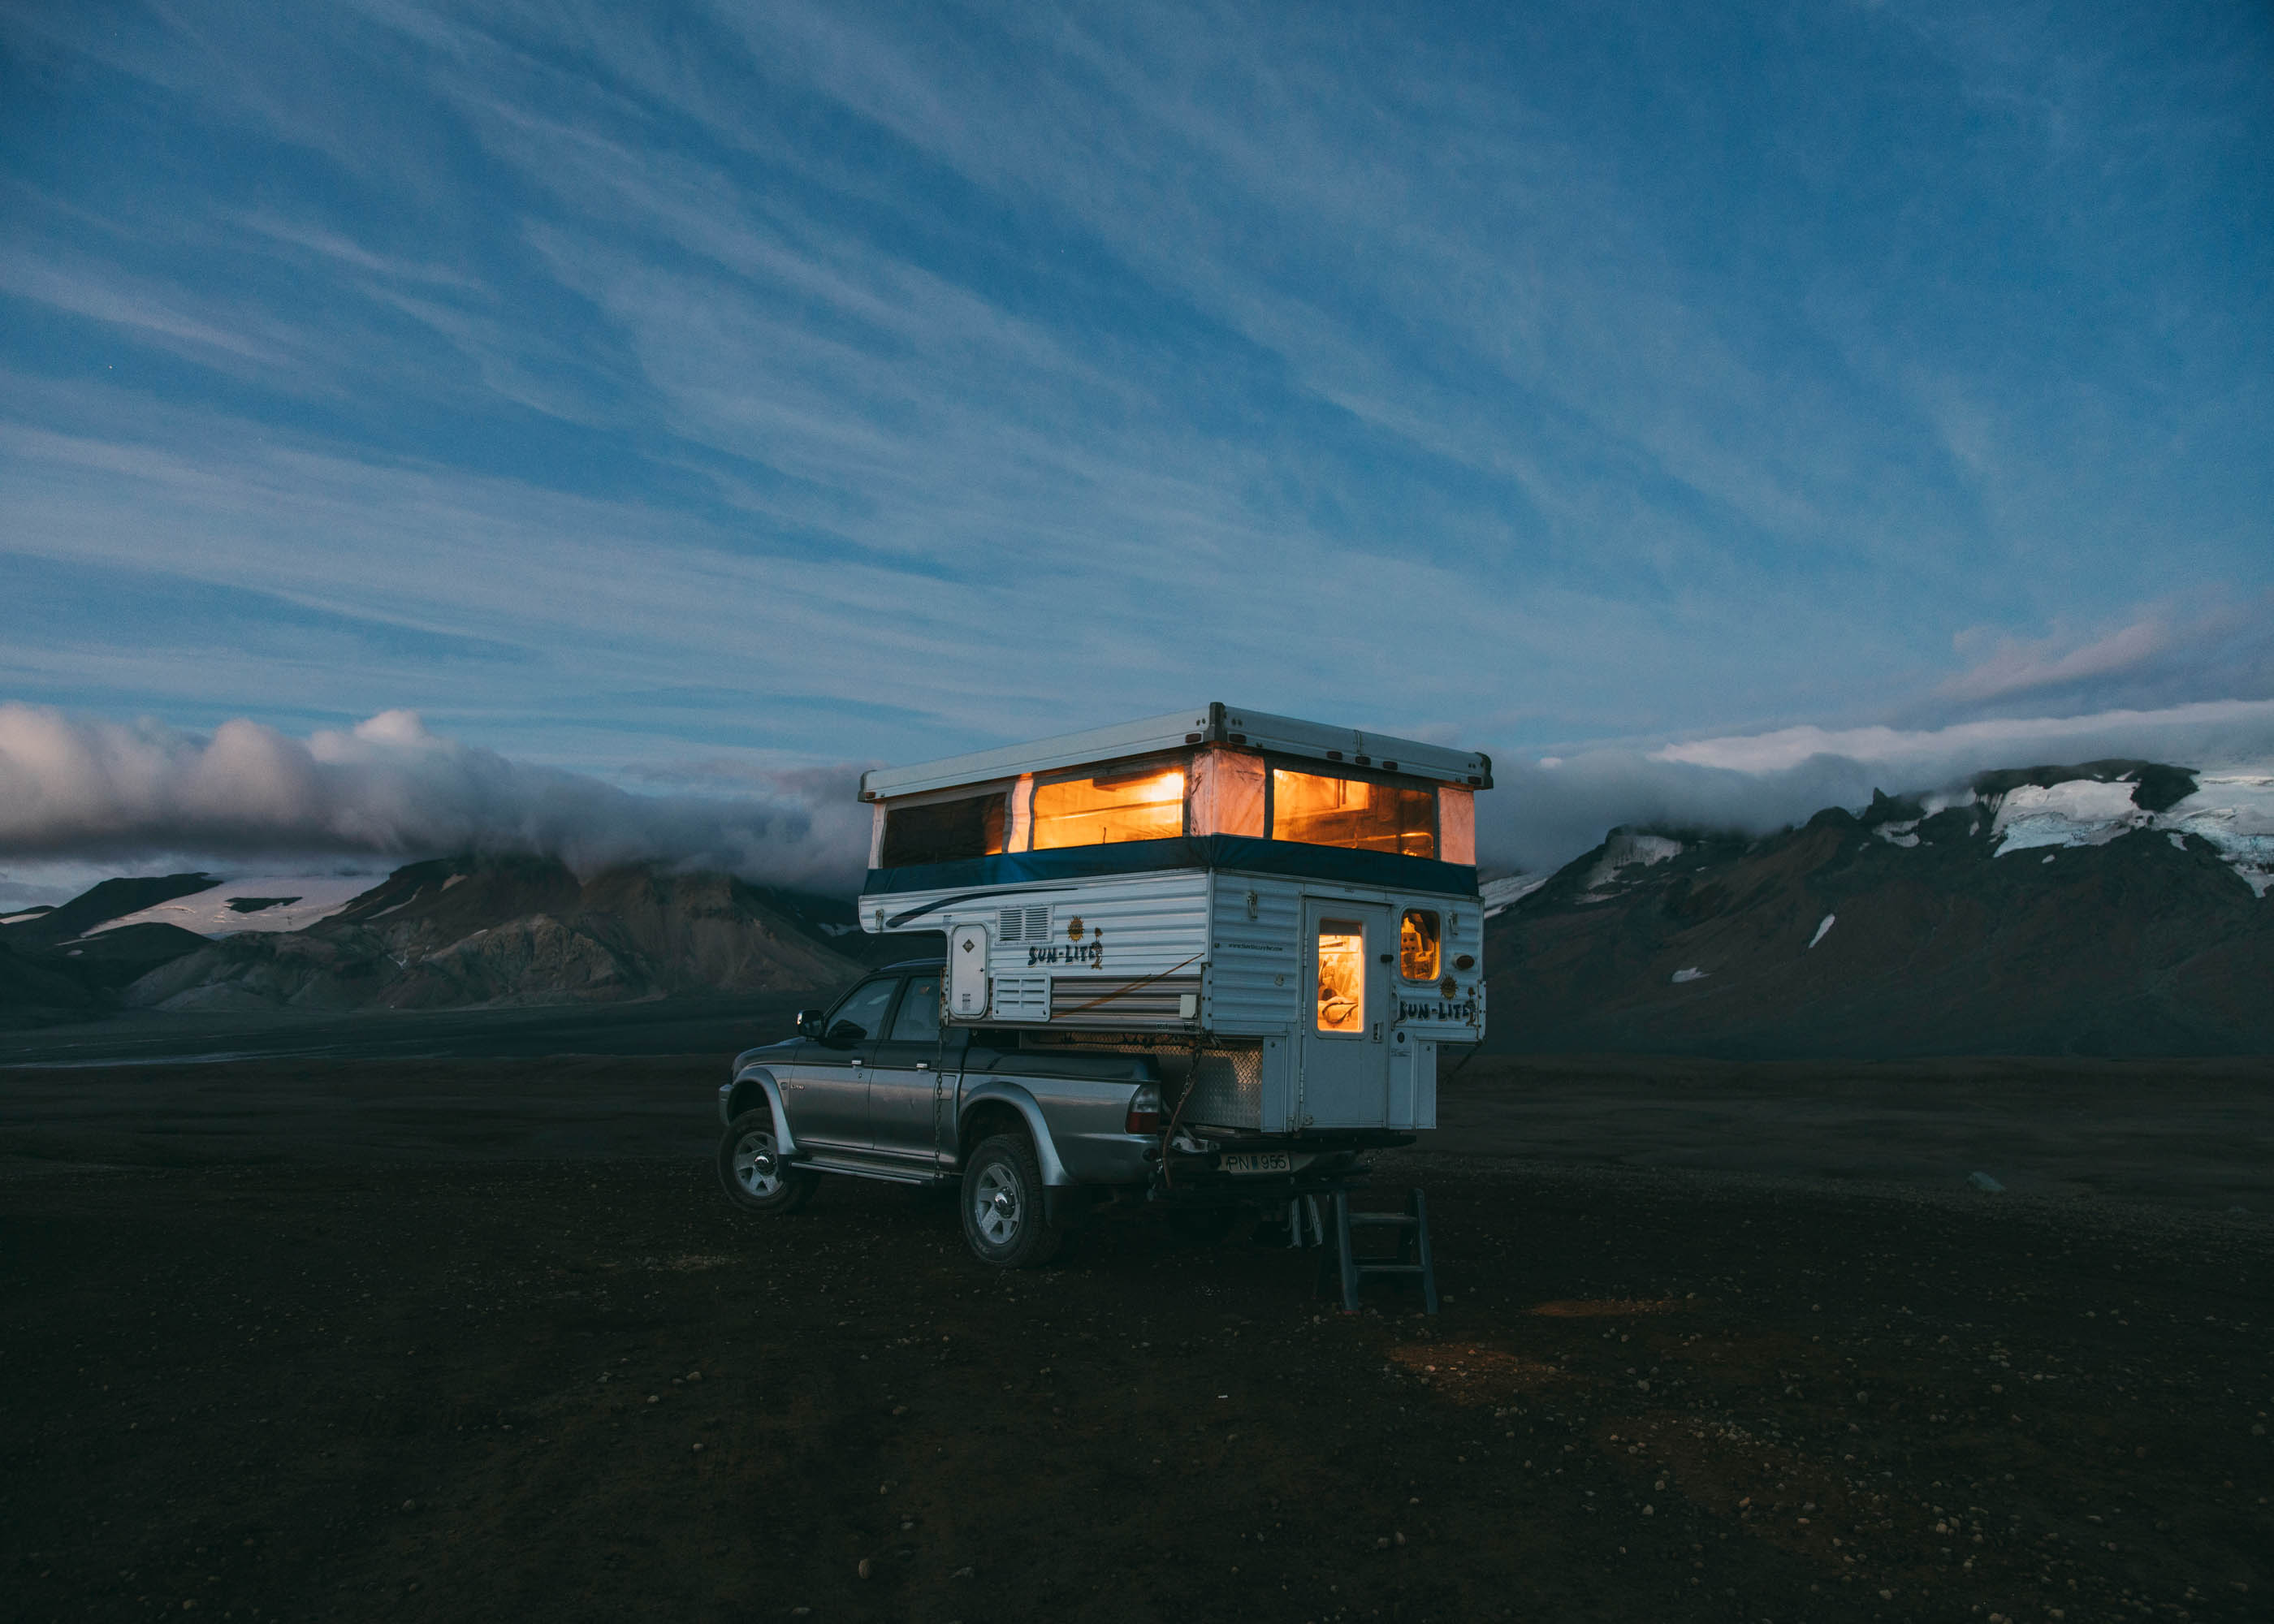 #personal #iceland #caravan #landscapes #mountains